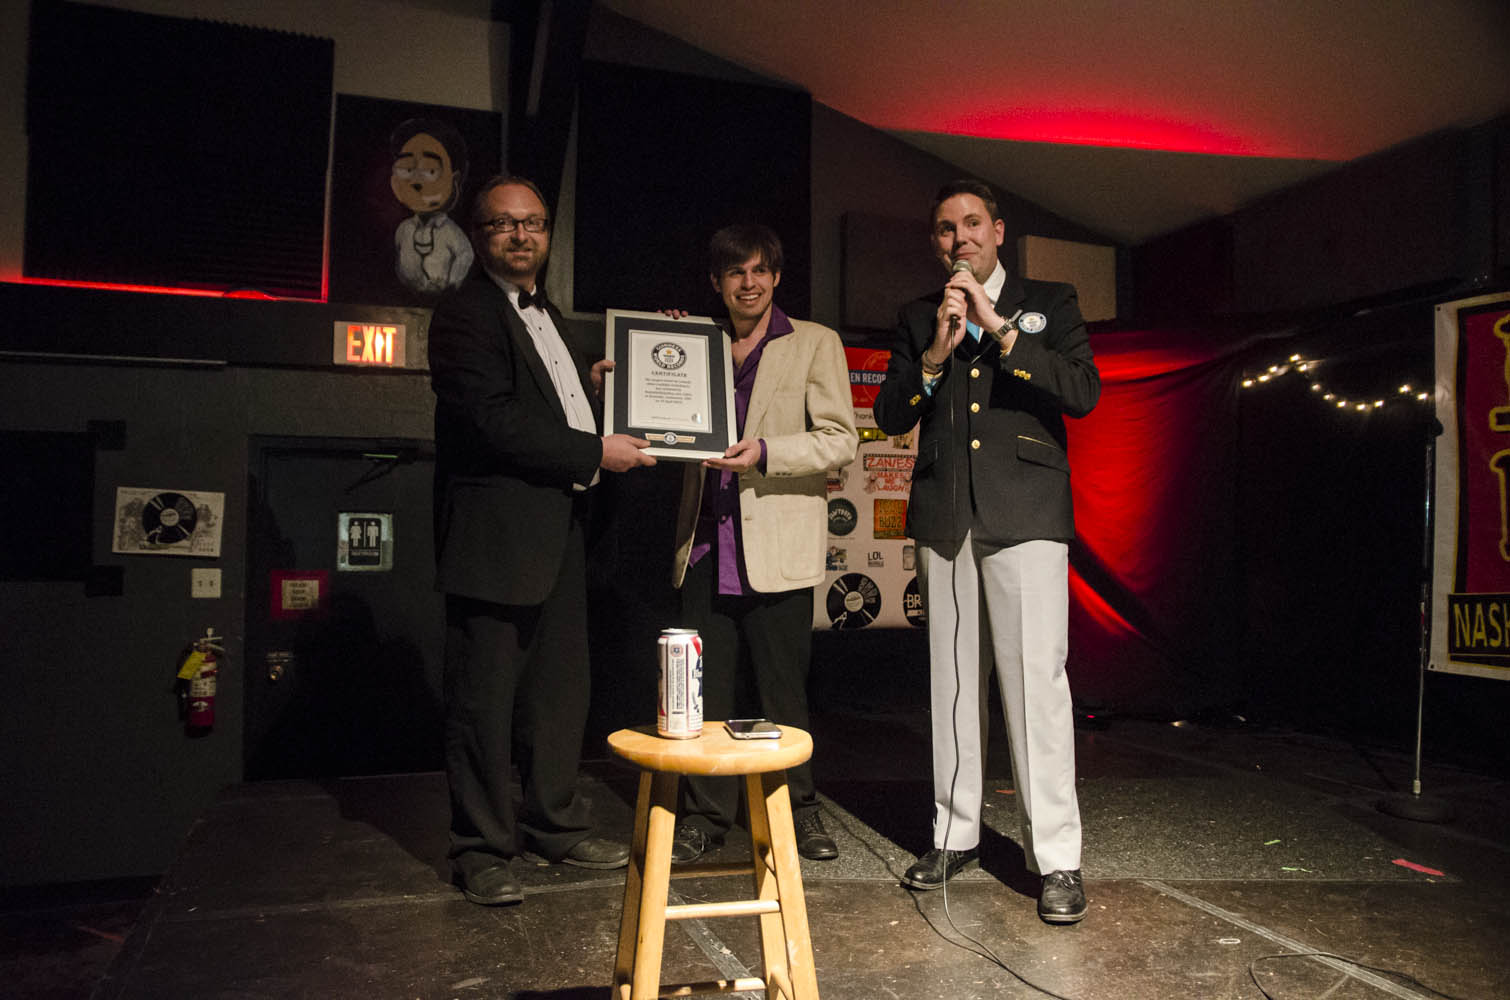 Official GUINNESS WORLD RECORDS™ adjudicator Michael Empric presents the framed certificate to Chad Riden (left) and DJ Buckley (center).